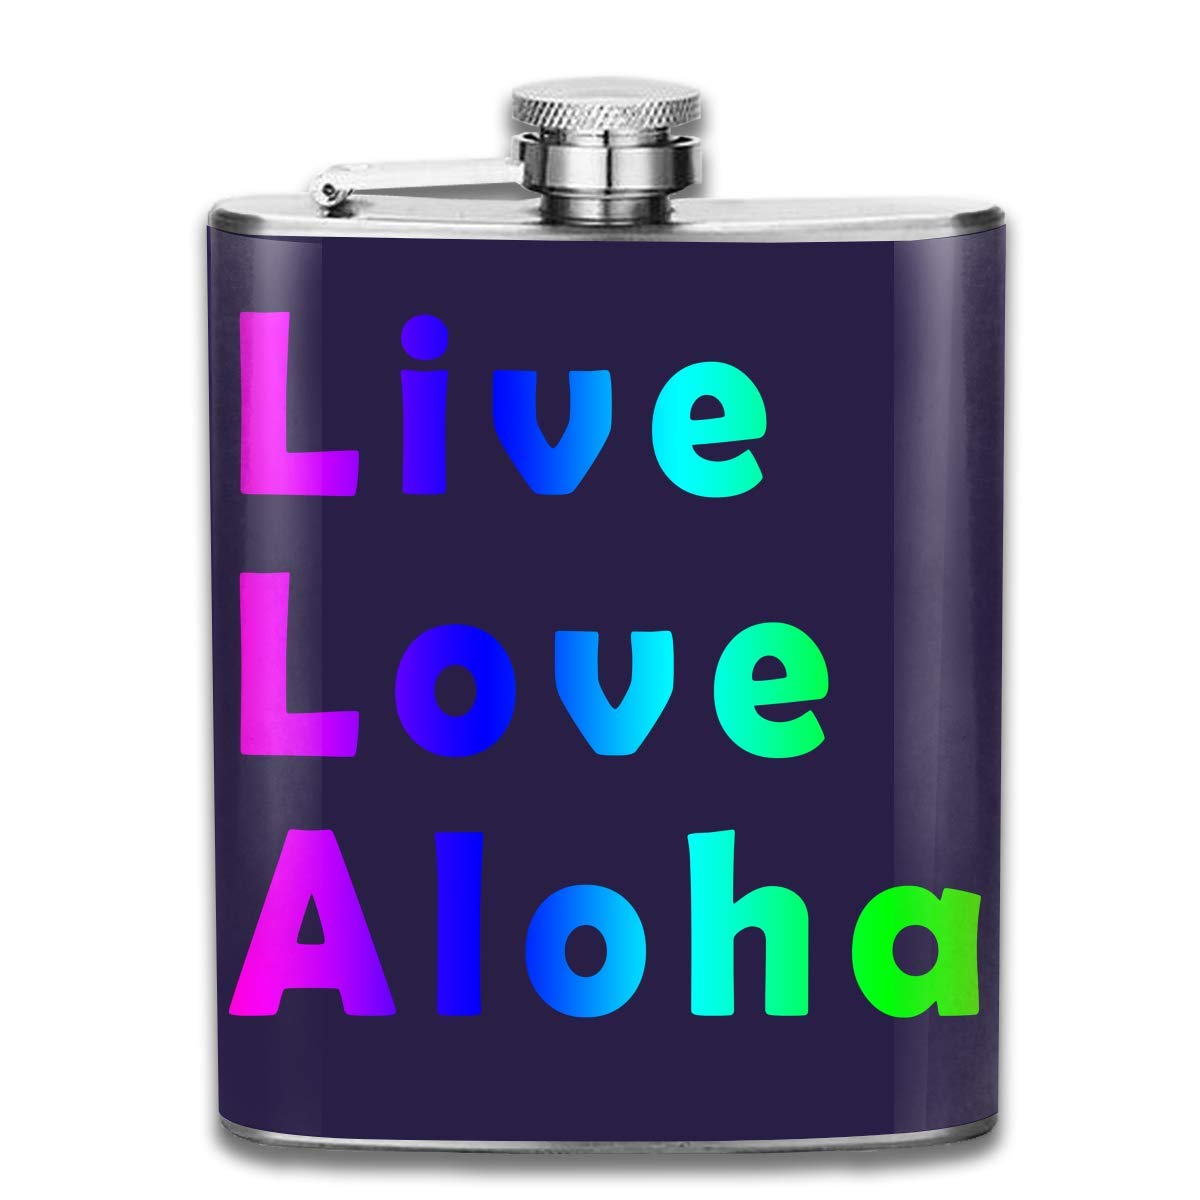 dfegyfr Men and Women Thick Stainless Steel Hip Flask 7 OZ Live Love Aloha Pocket Container for Drinking Liquor Whiskey